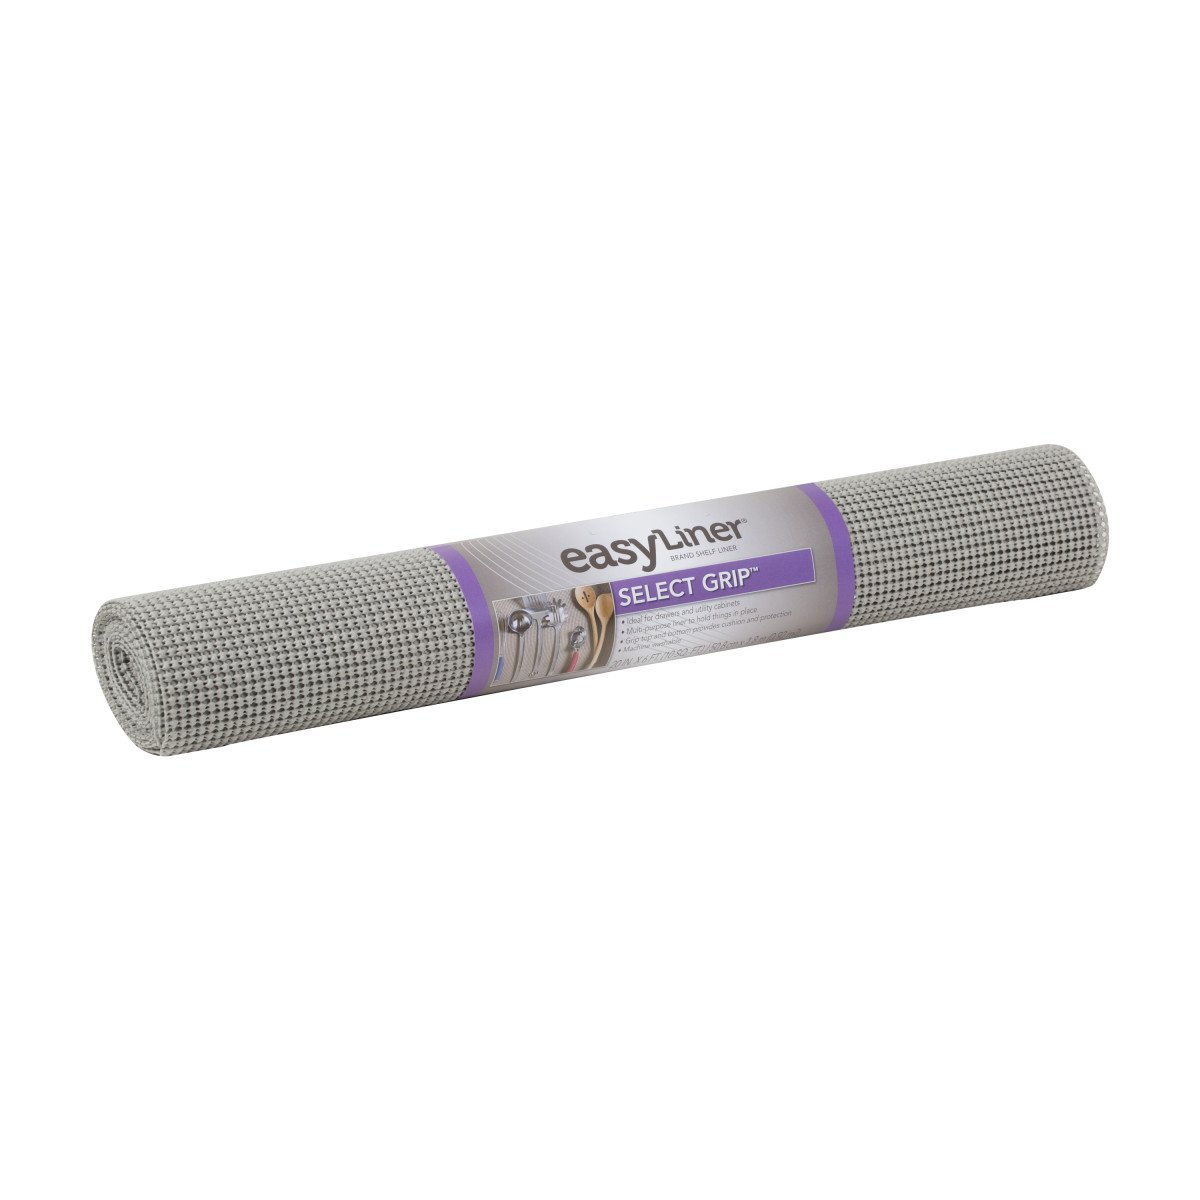 Duck Brand 283311 Select Grip Easy Liner Non-Adhesive Shelf Liner, 20-Inch x 6-Feet, Light Grey